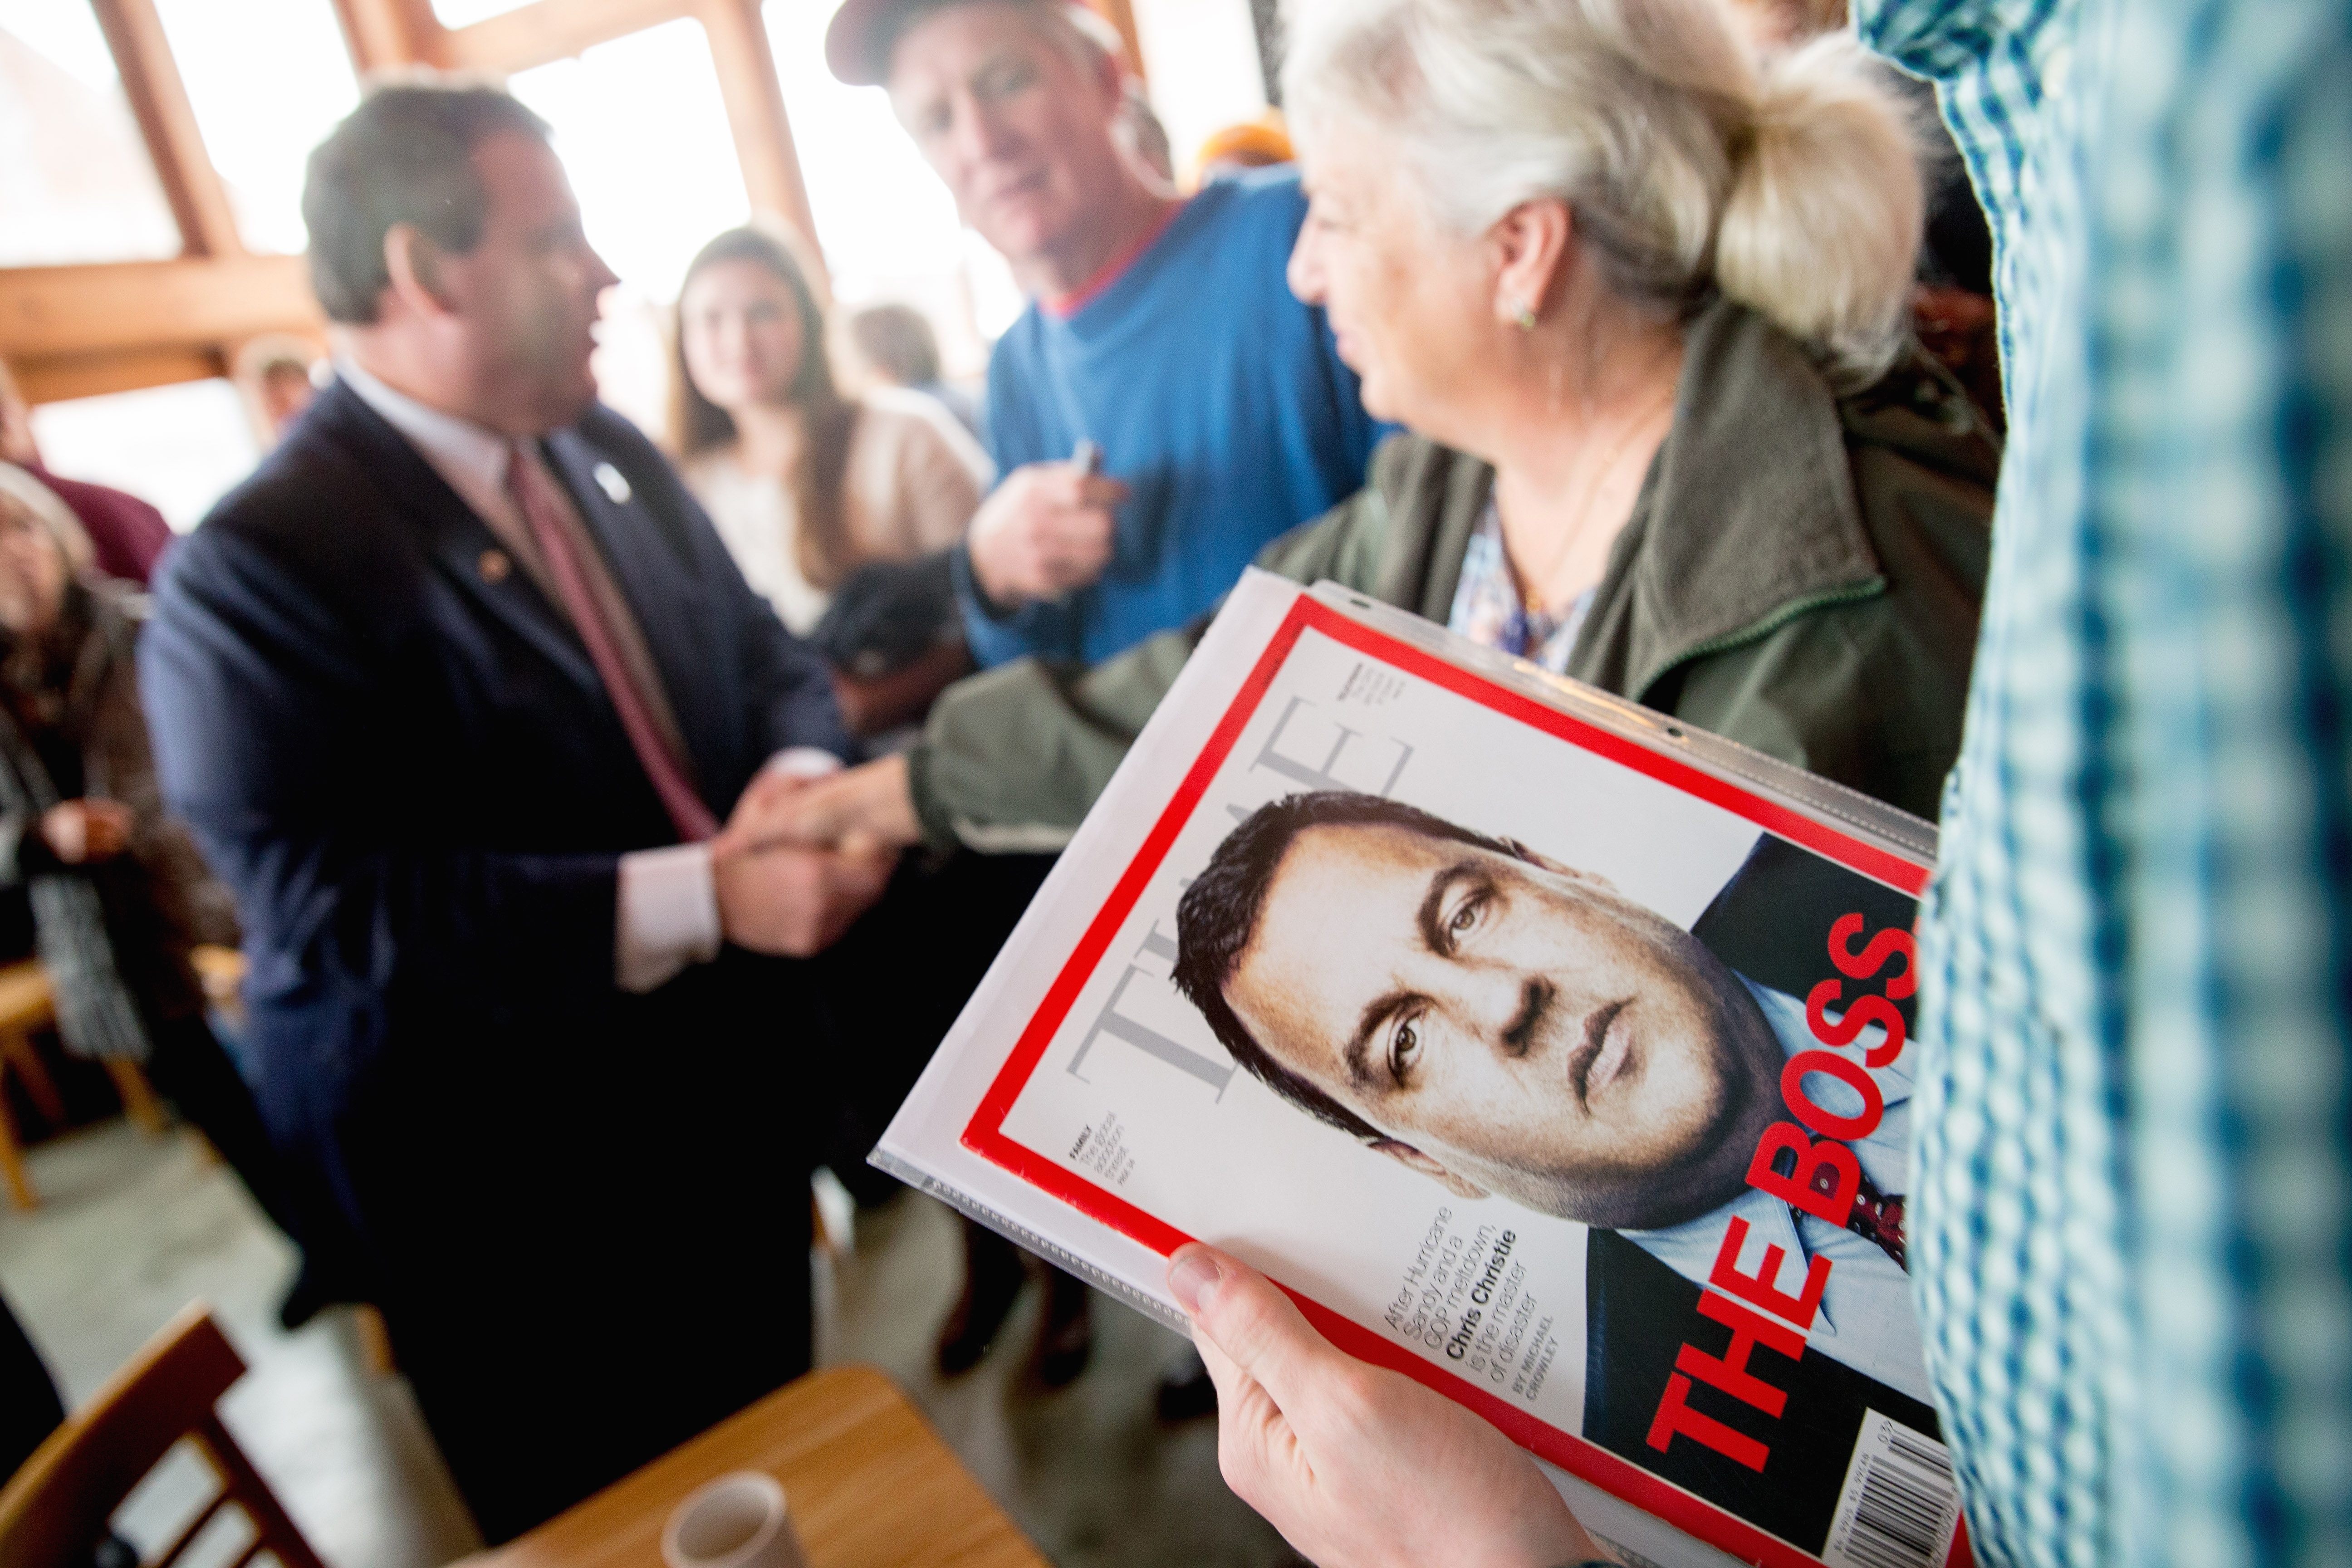 A visitor holds a Time Magazine depicting Republican presidential candidate, New Jersey Gov. Chris Christie after he spoke at Elly's Tea and Coffee House in Muscatine, Iowa, Tuesday, Dec. 29, 2015.